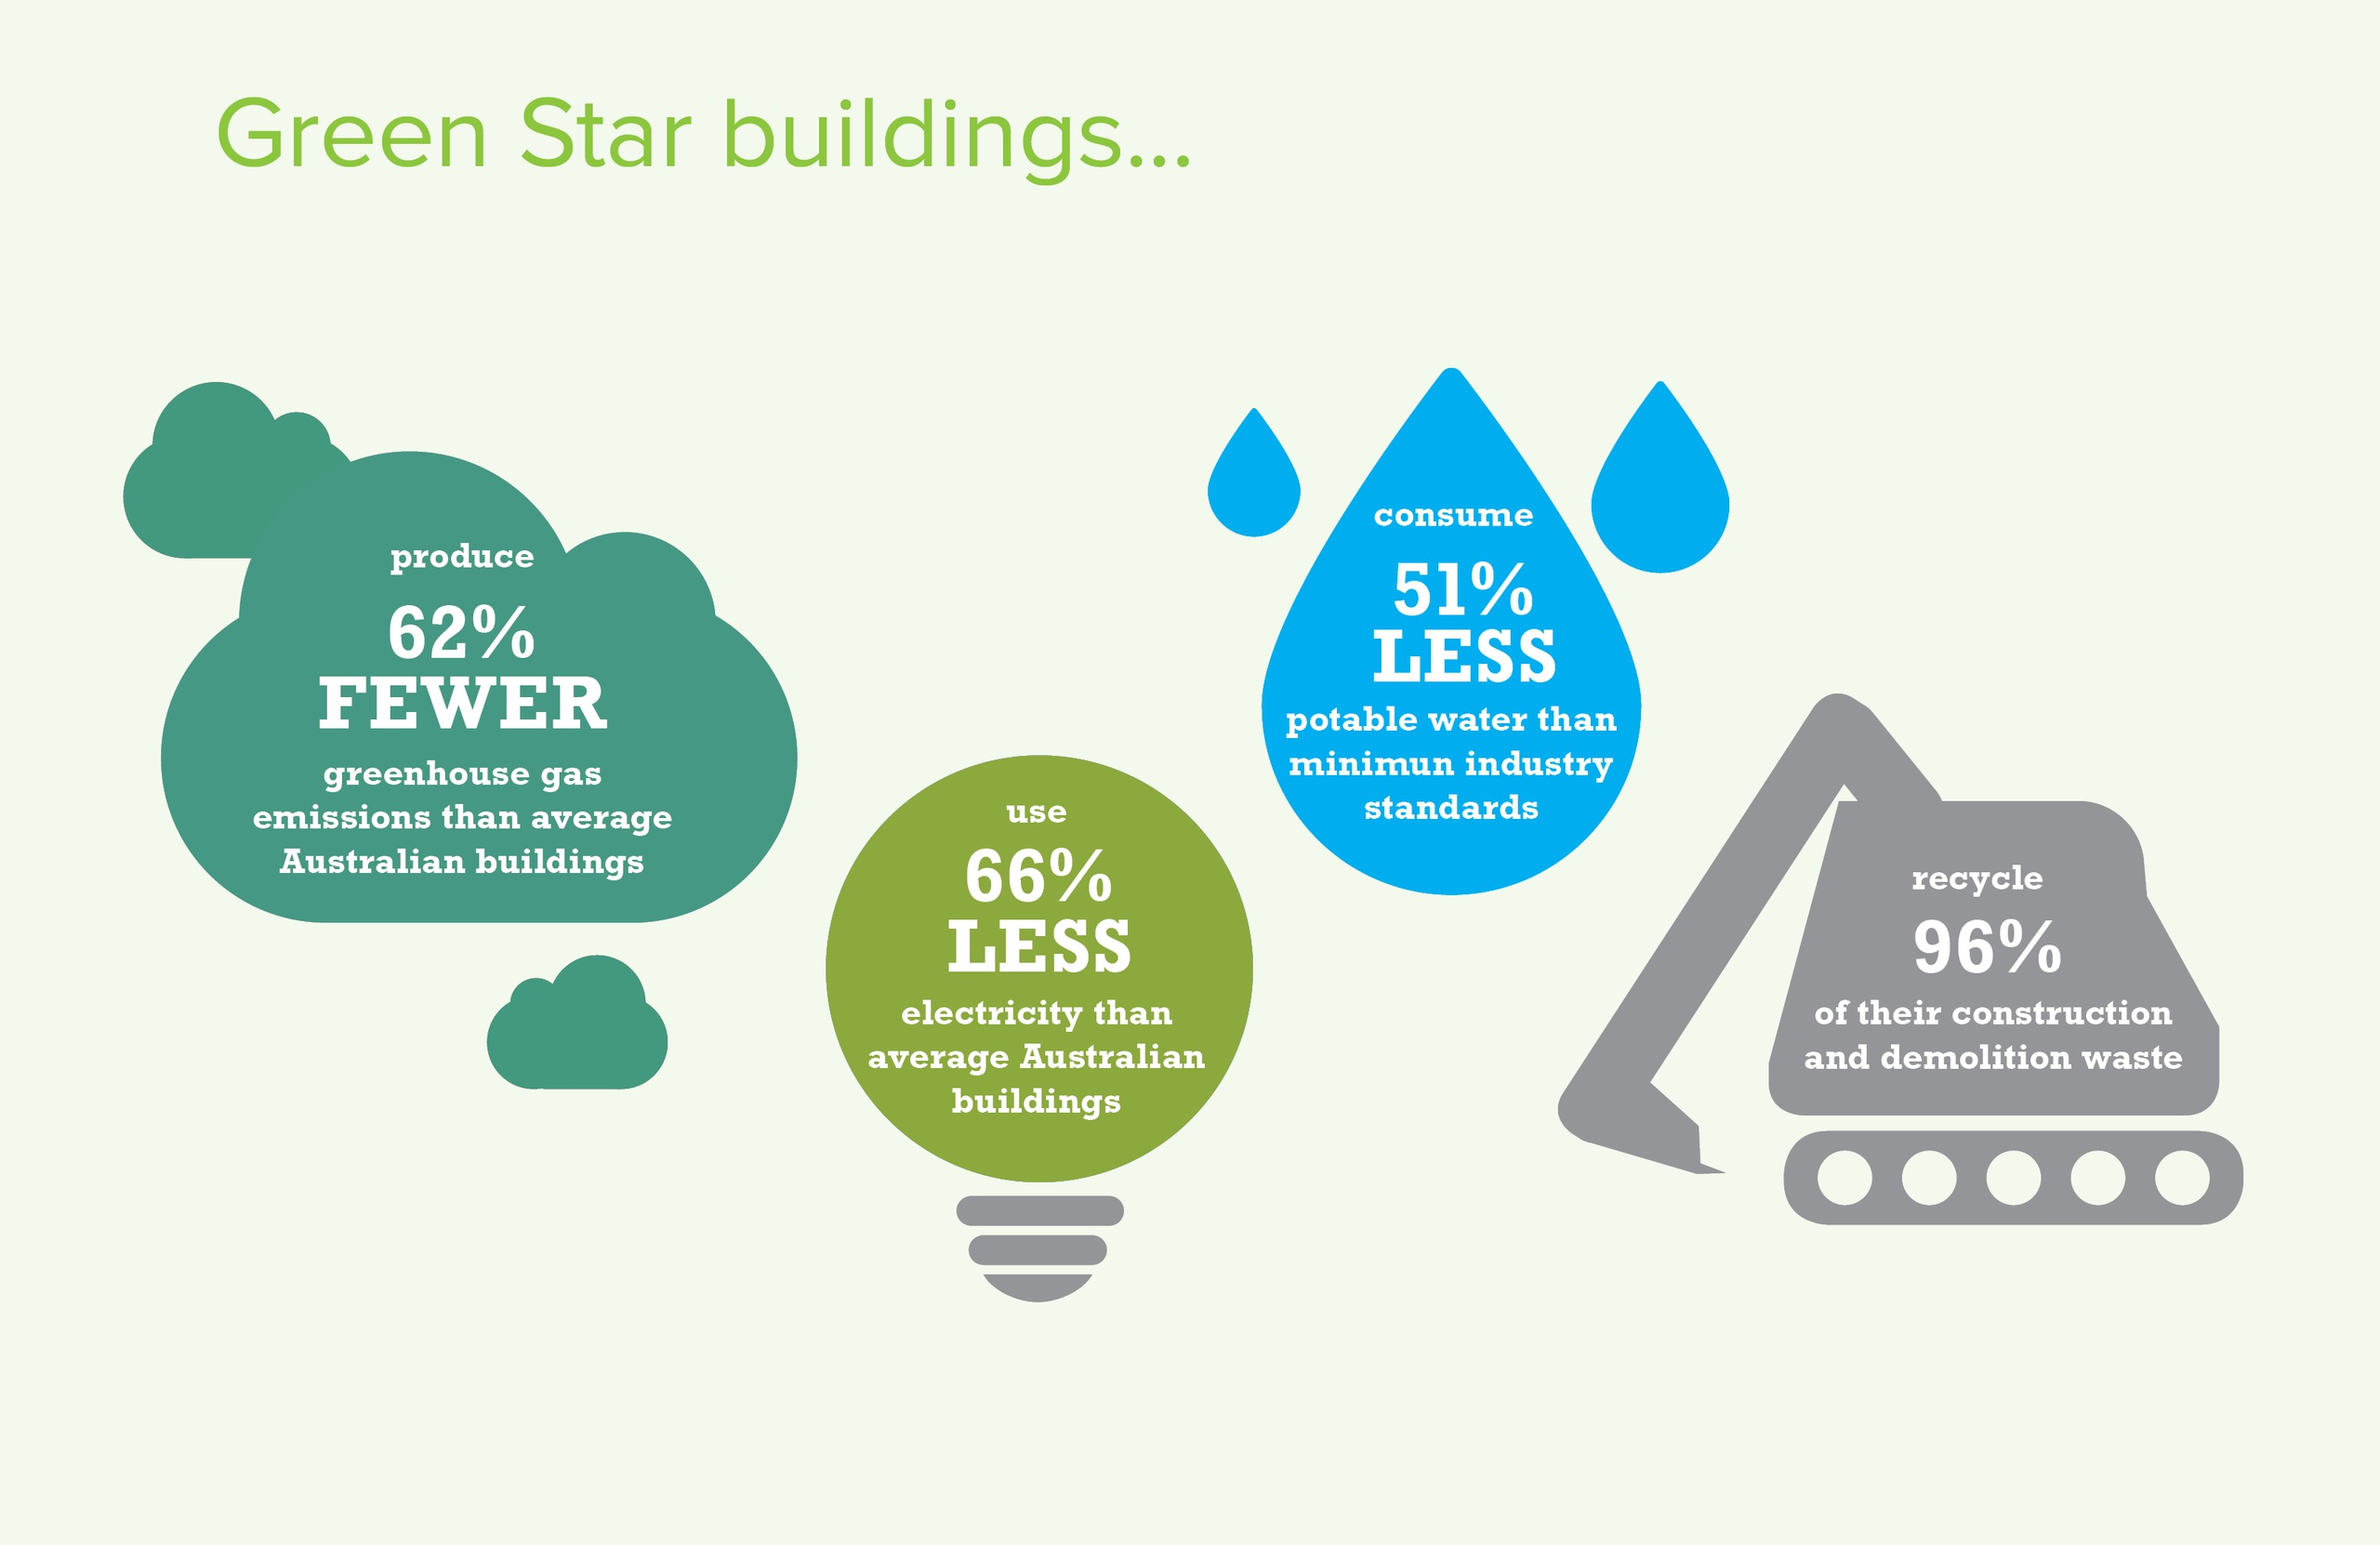 Green star green building council of australia whether youre a building owner operator or occupant creating a green community or looking to live more sustainably green star offers a framework of best xflitez Choice Image